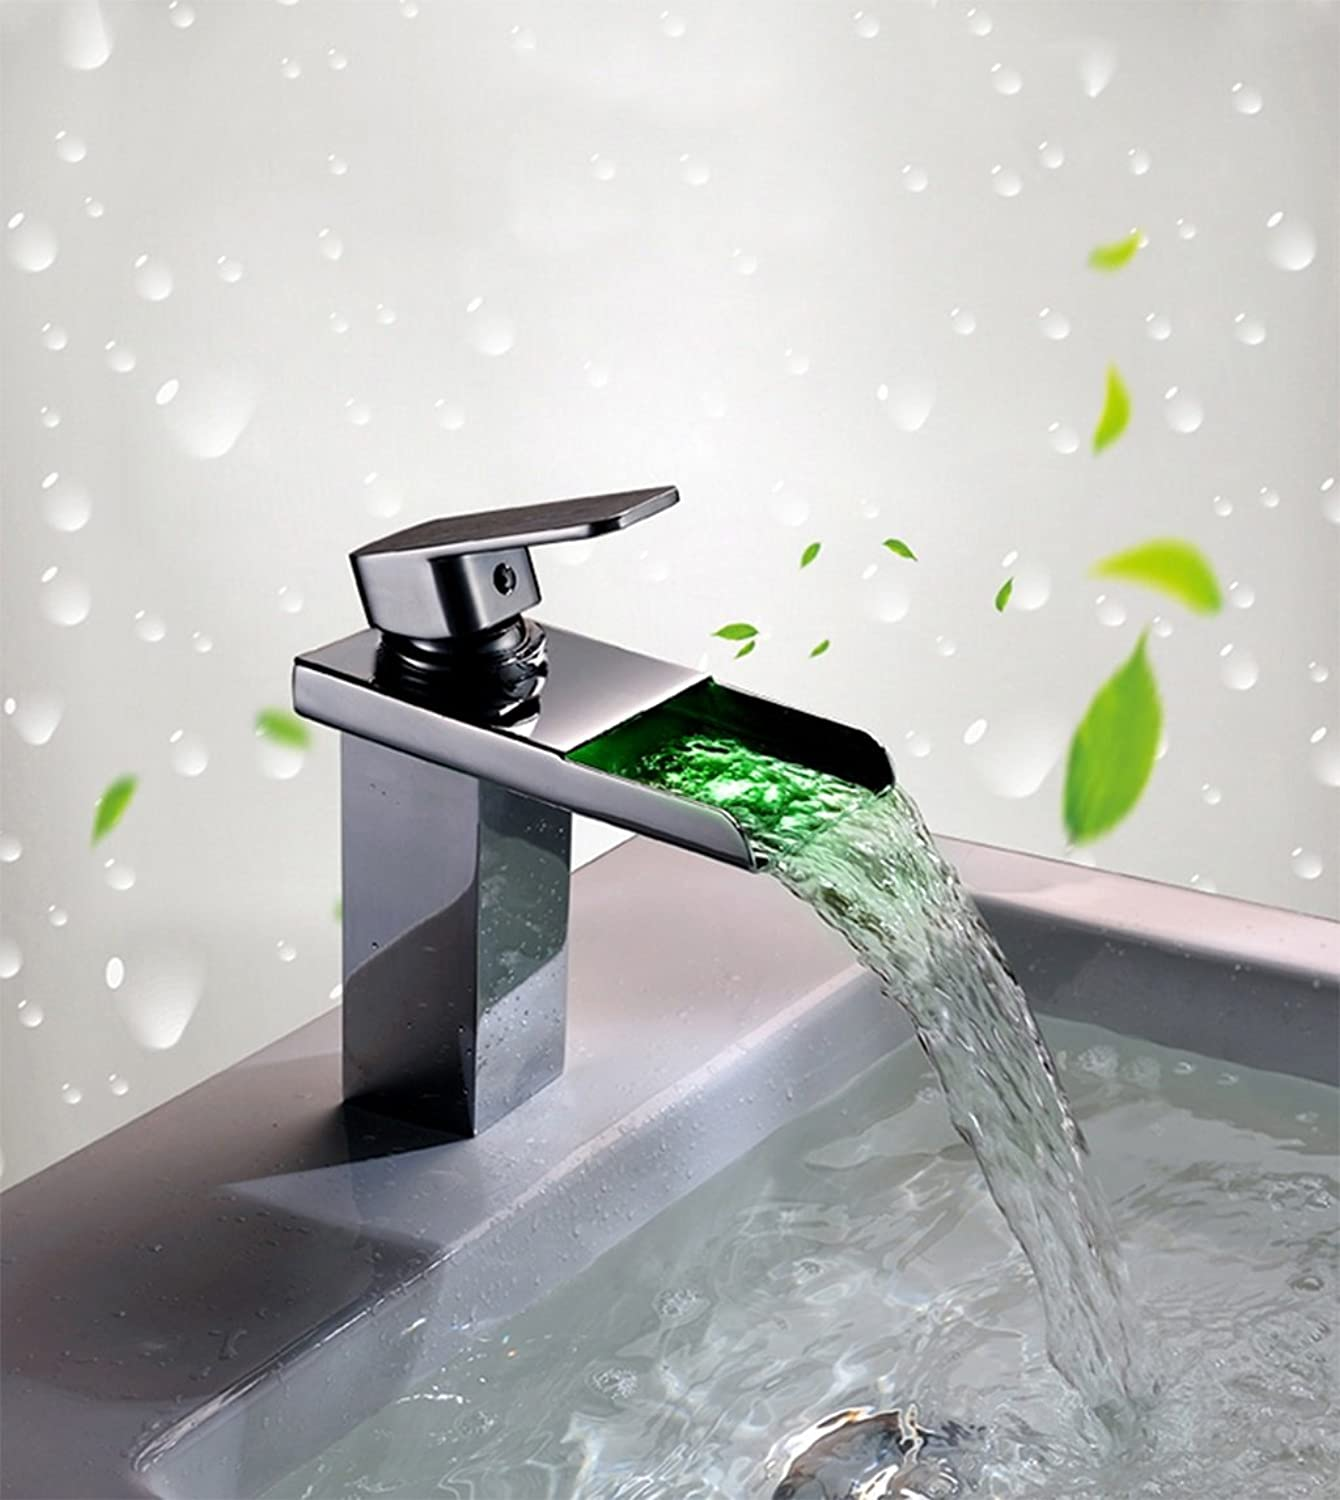 European-style retro basin faucet Intelligent LED luminous color temperature of hot and cold taps Creative washbasin full copper waterfall basin faucet SLT